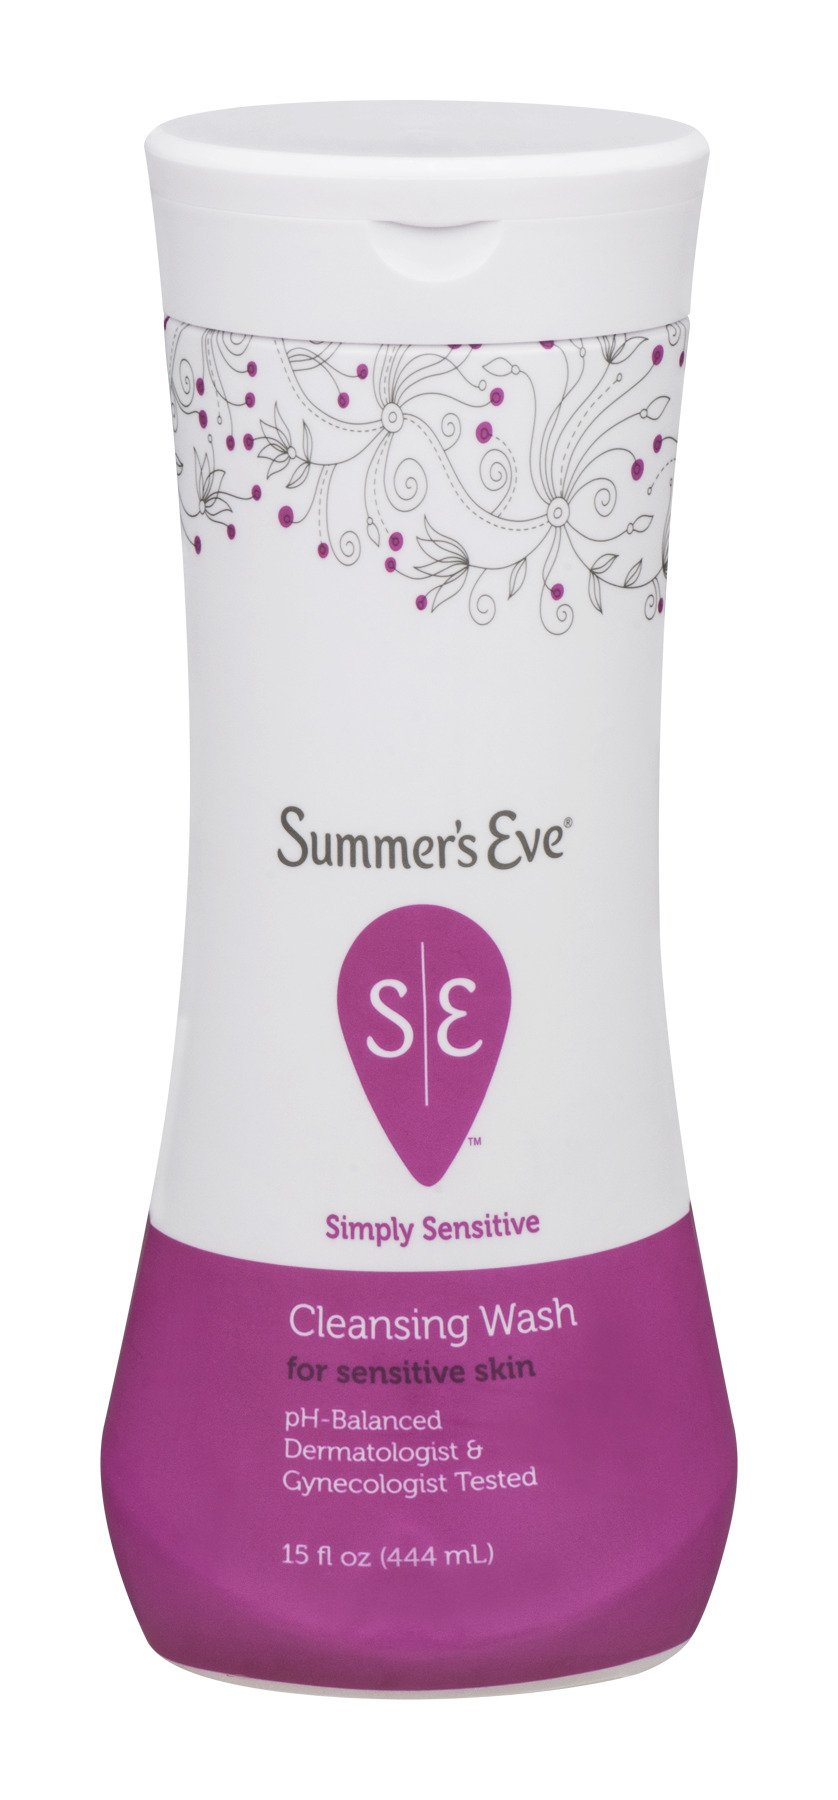 Summer's Eve Cleansing Wash | Simply Sensitive | 15 Ounce | Pack of 3 | pH-Balanced, Dermatologist & Gynecologist Tested